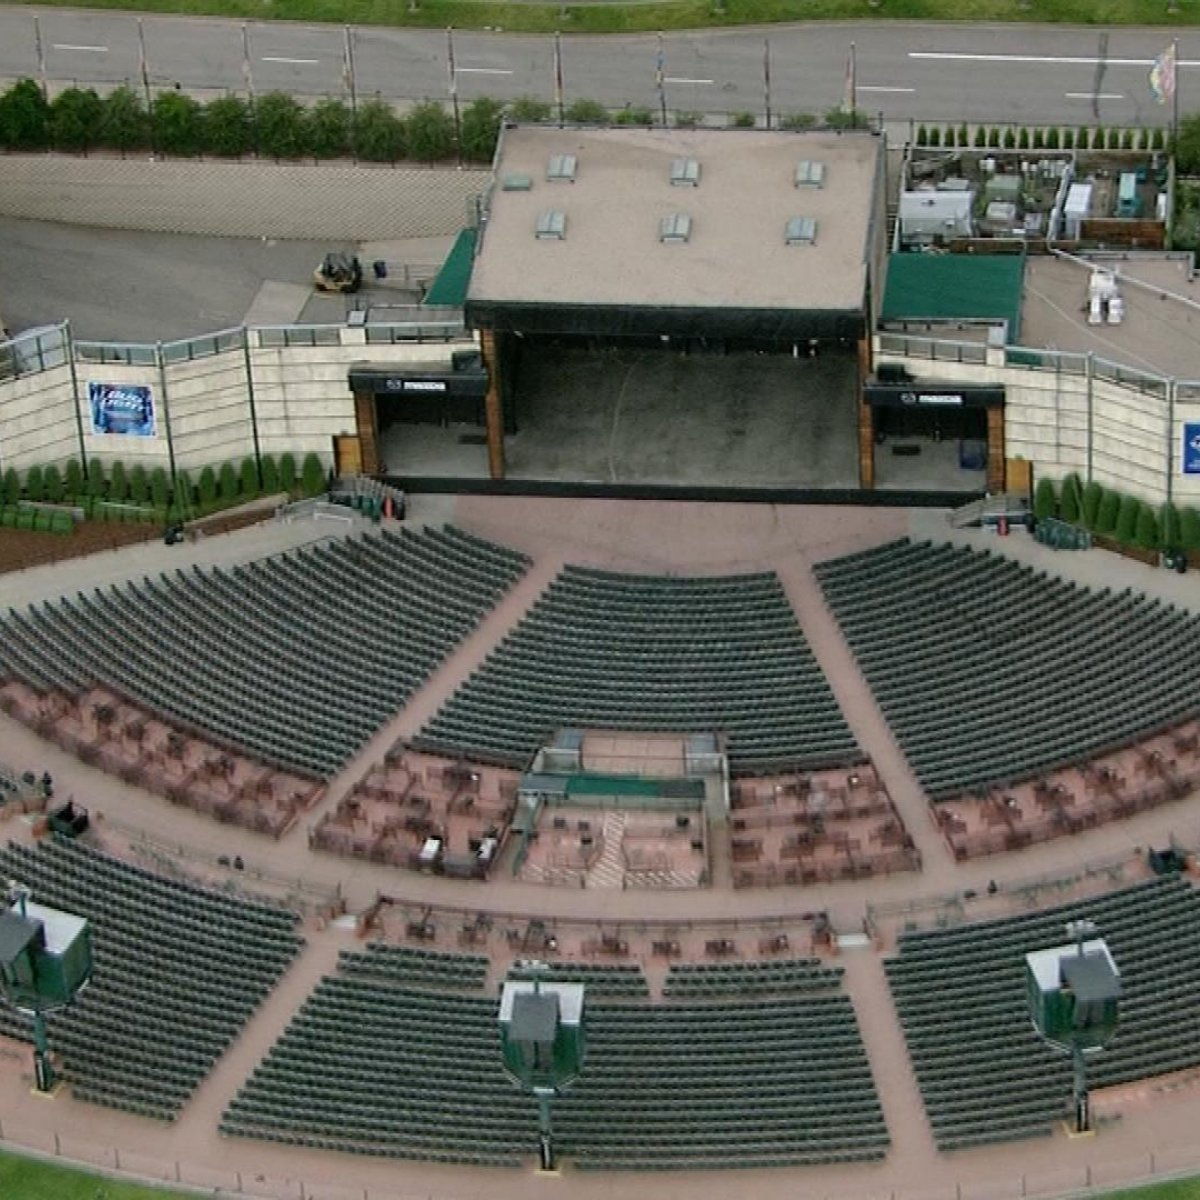 Overhead image of Fiddler's Green Ampitheatre during daytime, empty.